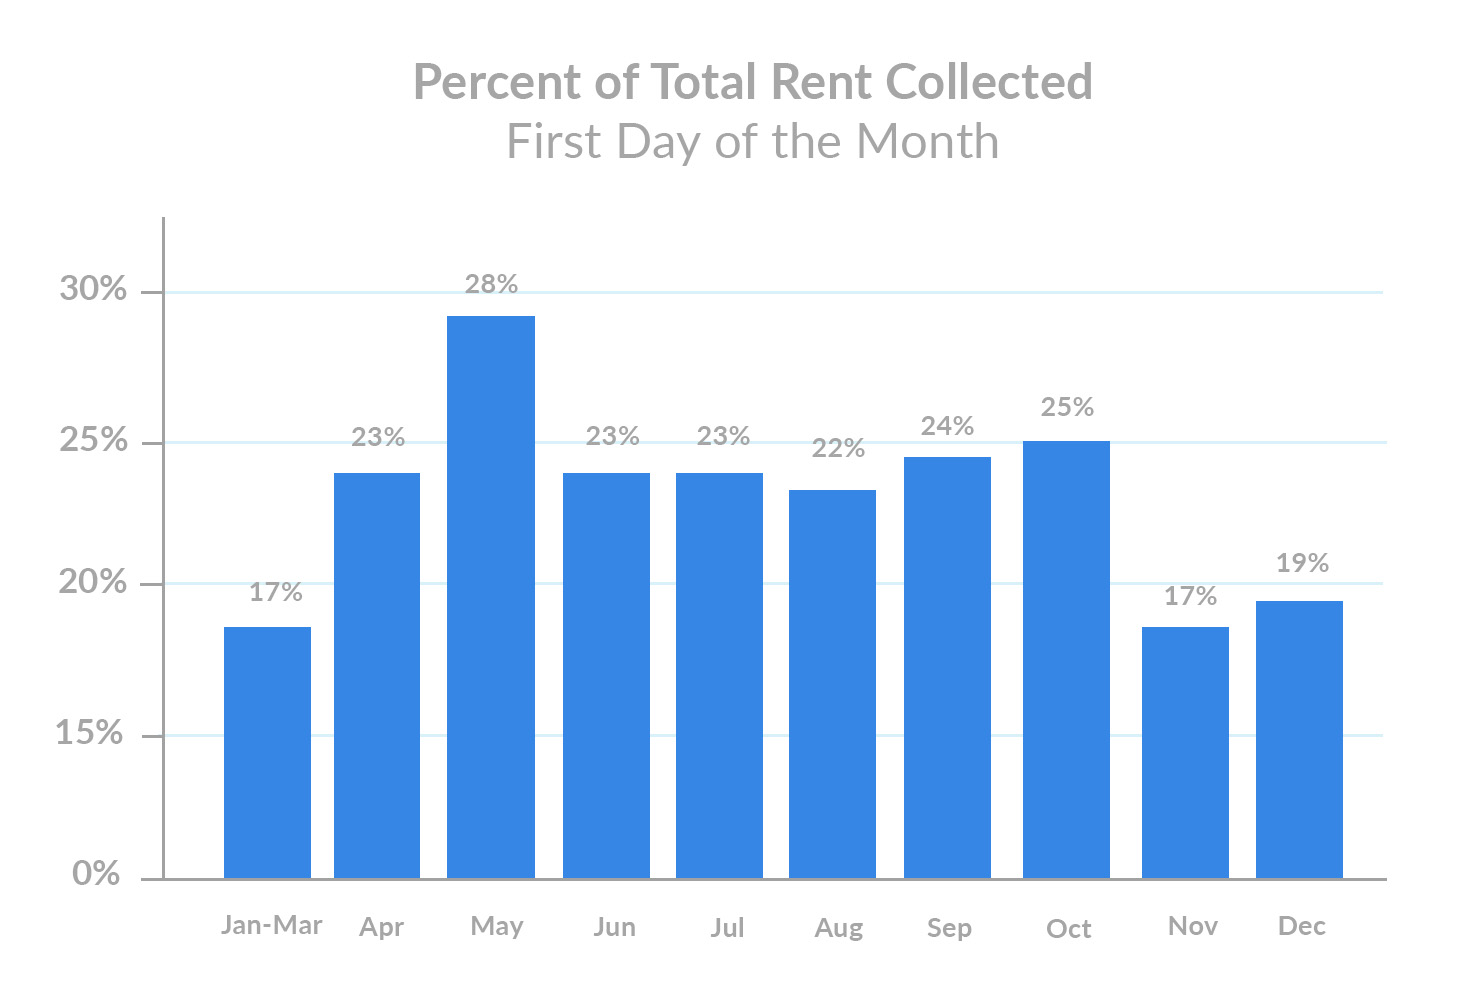 December 1st Rent Payments Percent of Total Rent Collected